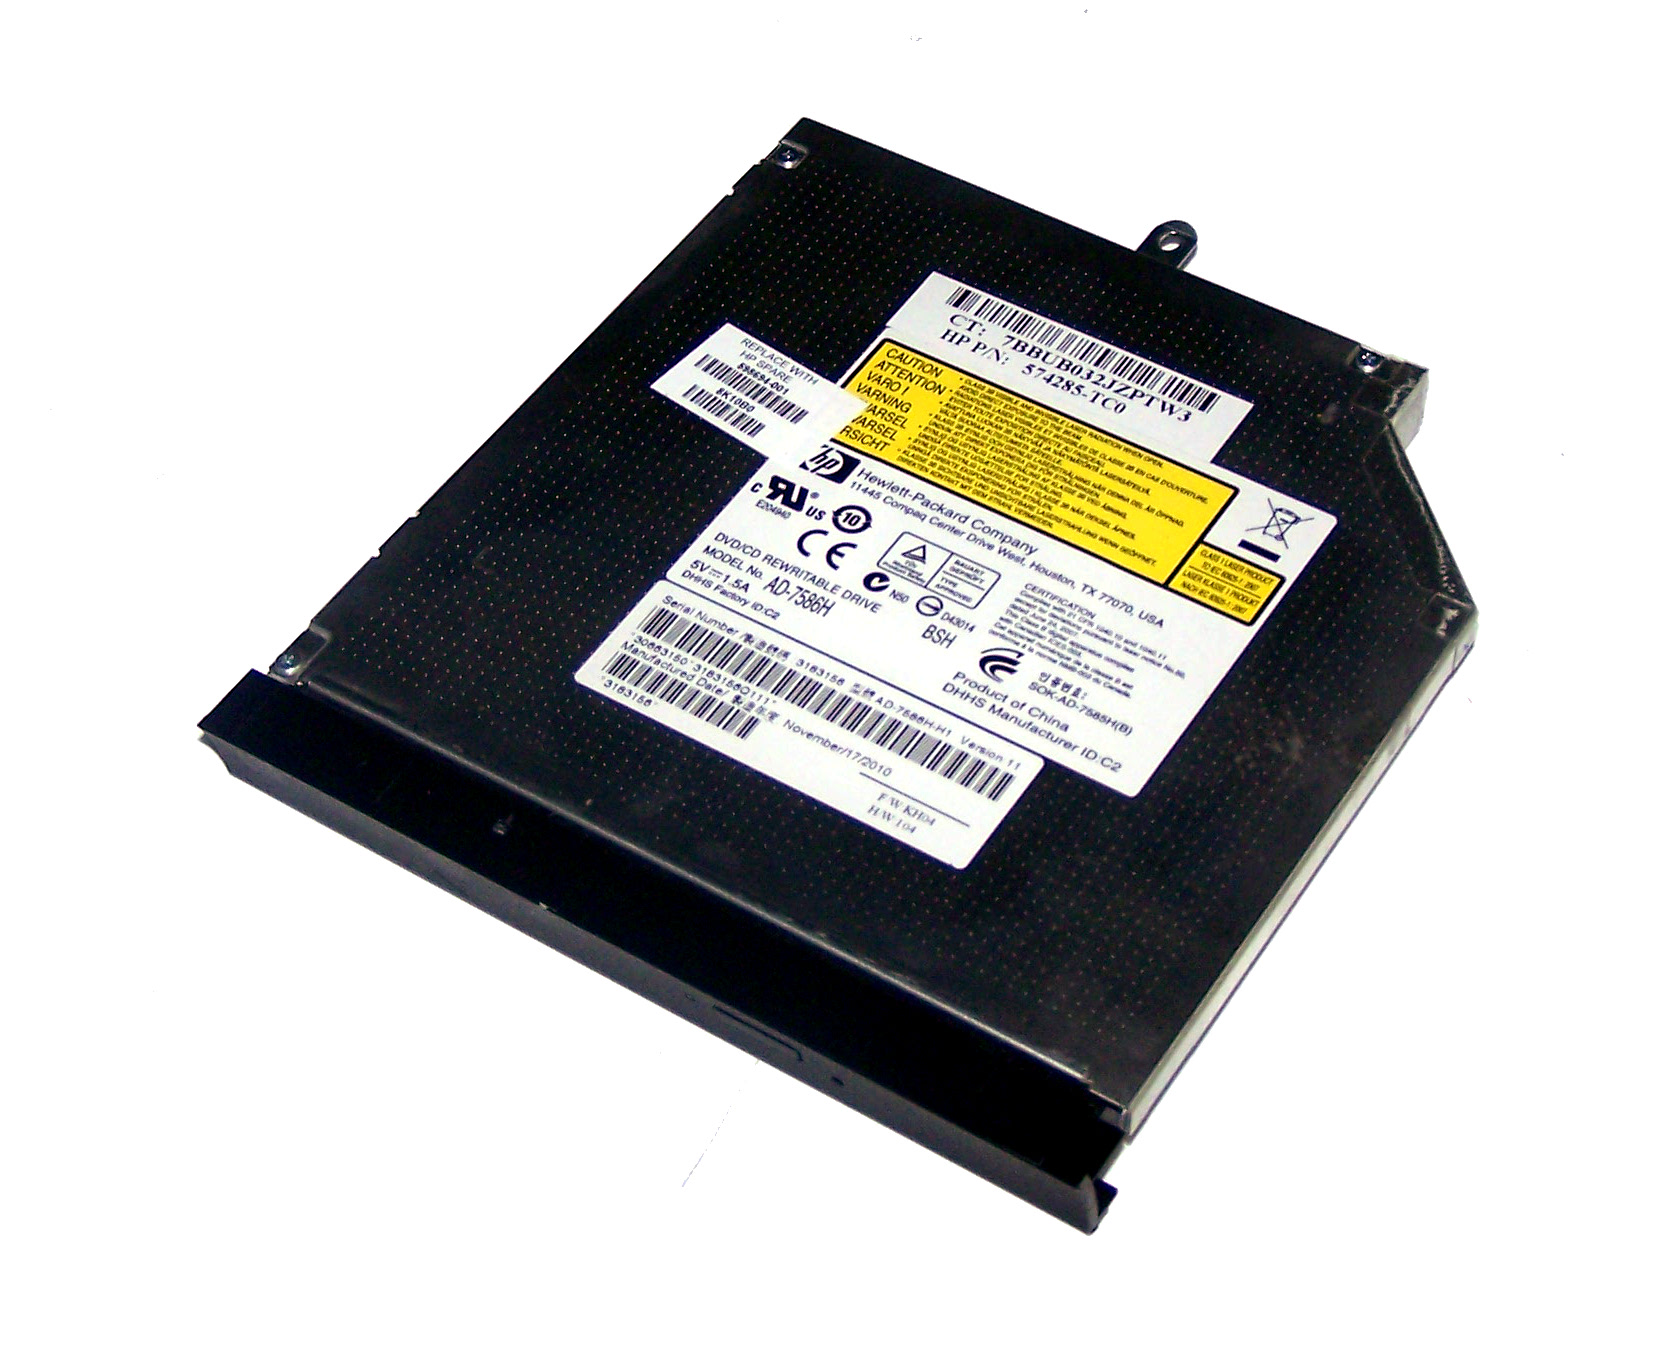 HP PROBOOK 4520S DVD DRIVERS FOR MAC DOWNLOAD